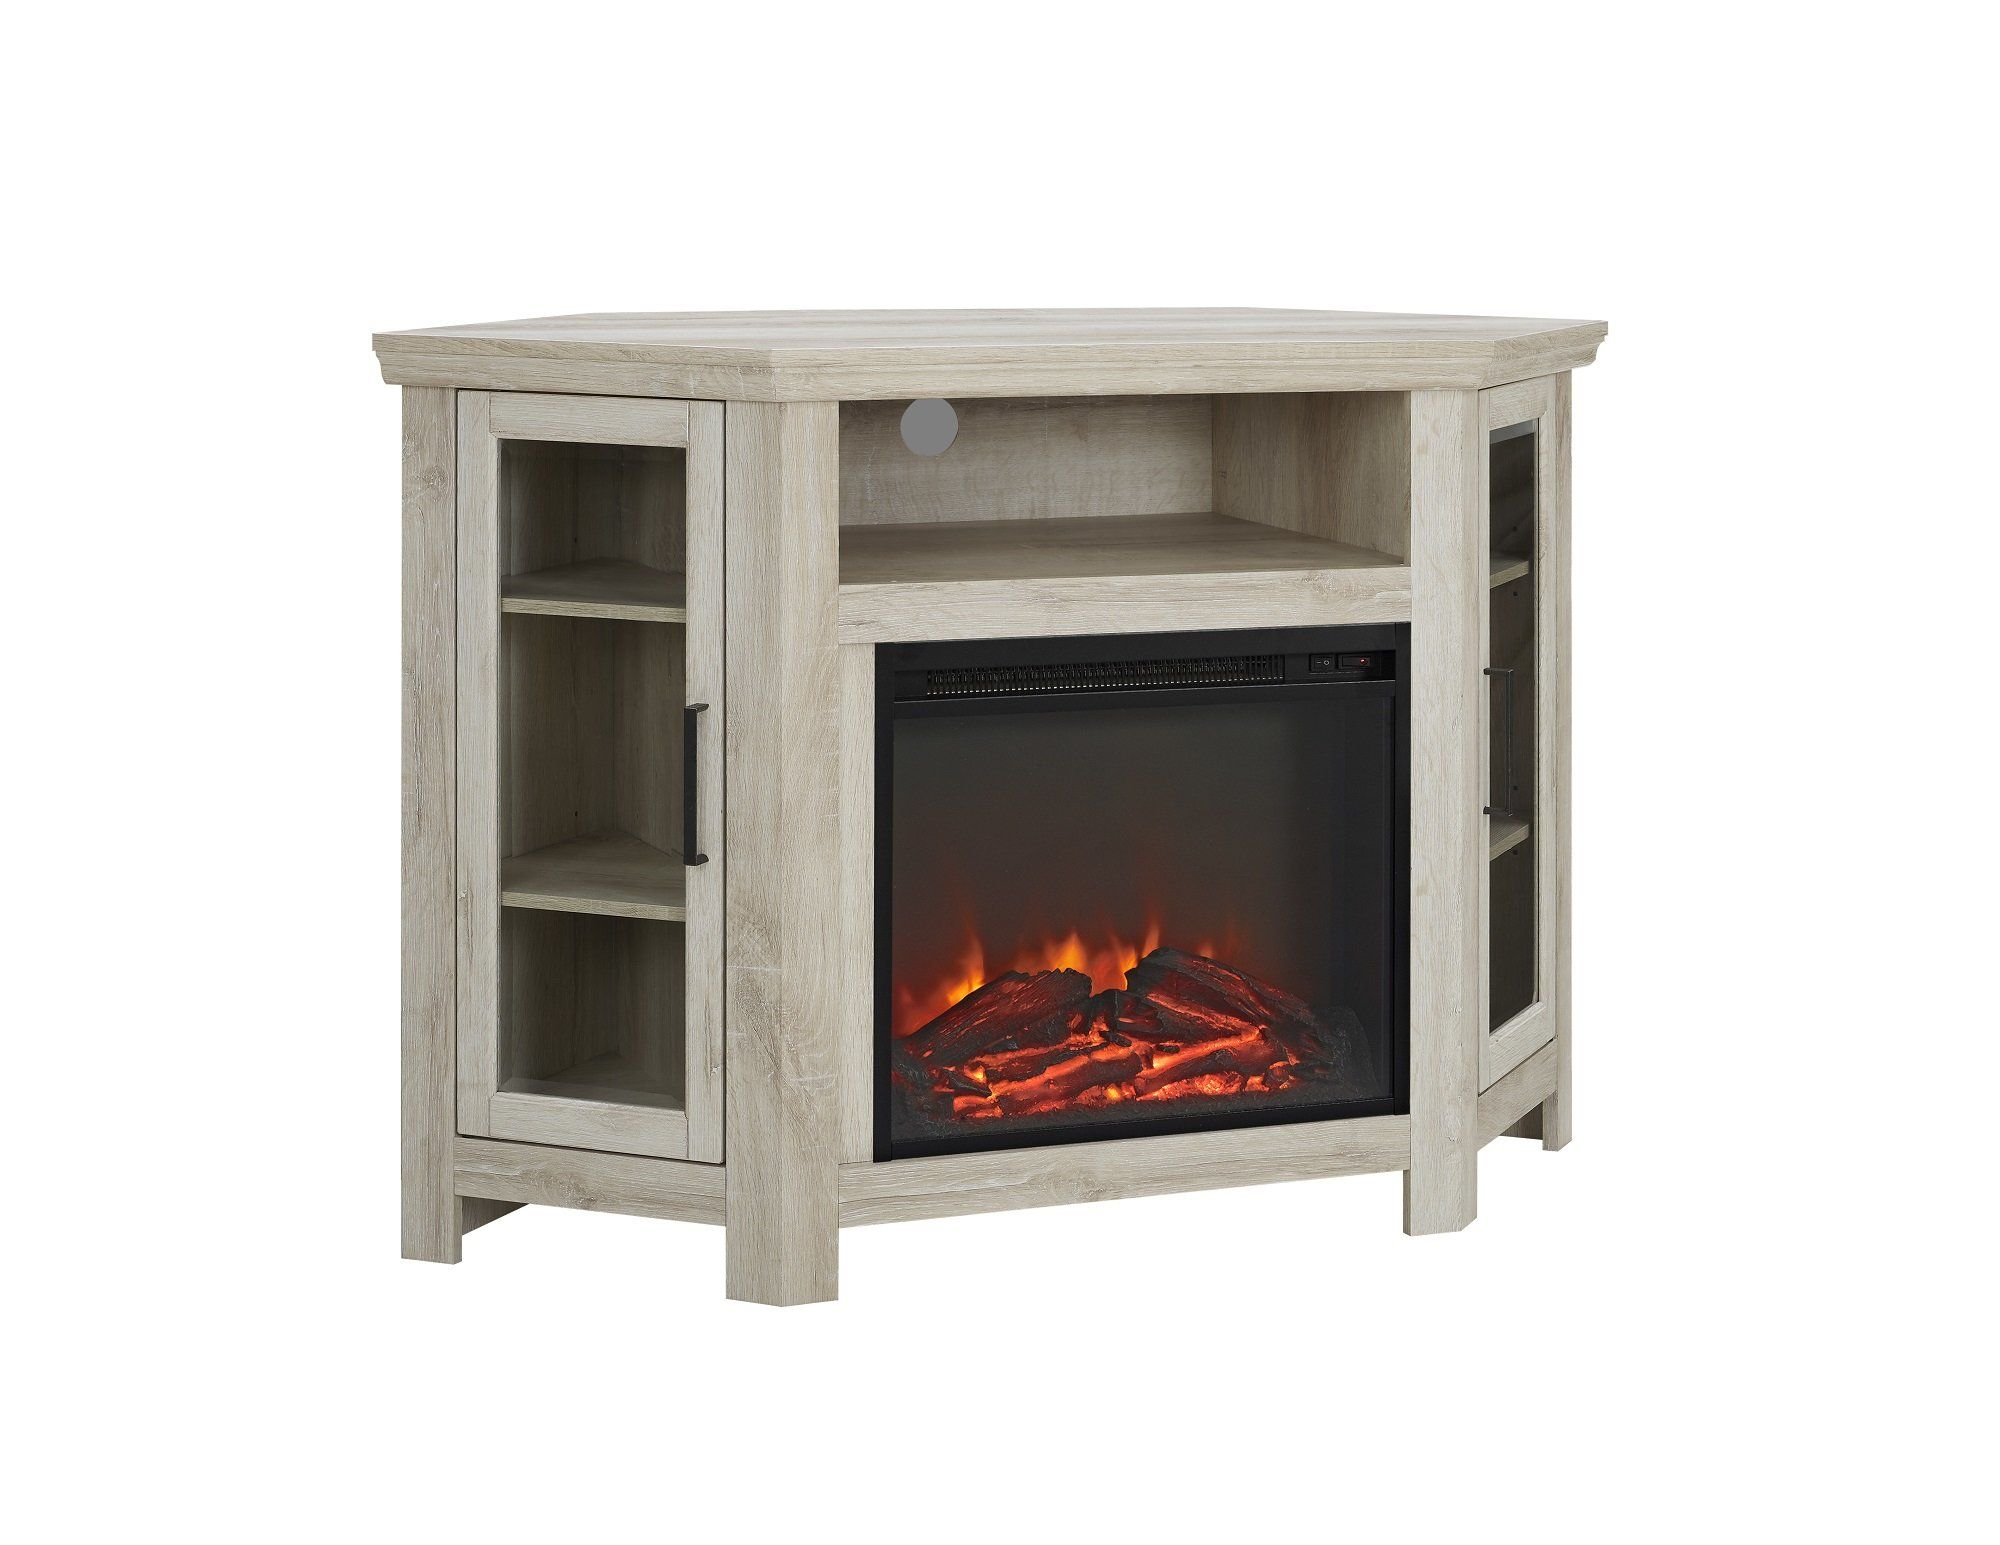 fbfa70a263ee2dfe4d8e1a6d14966340 Top Result 50 Awesome Corner Electric Fireplace Pic 2018 Jdt4